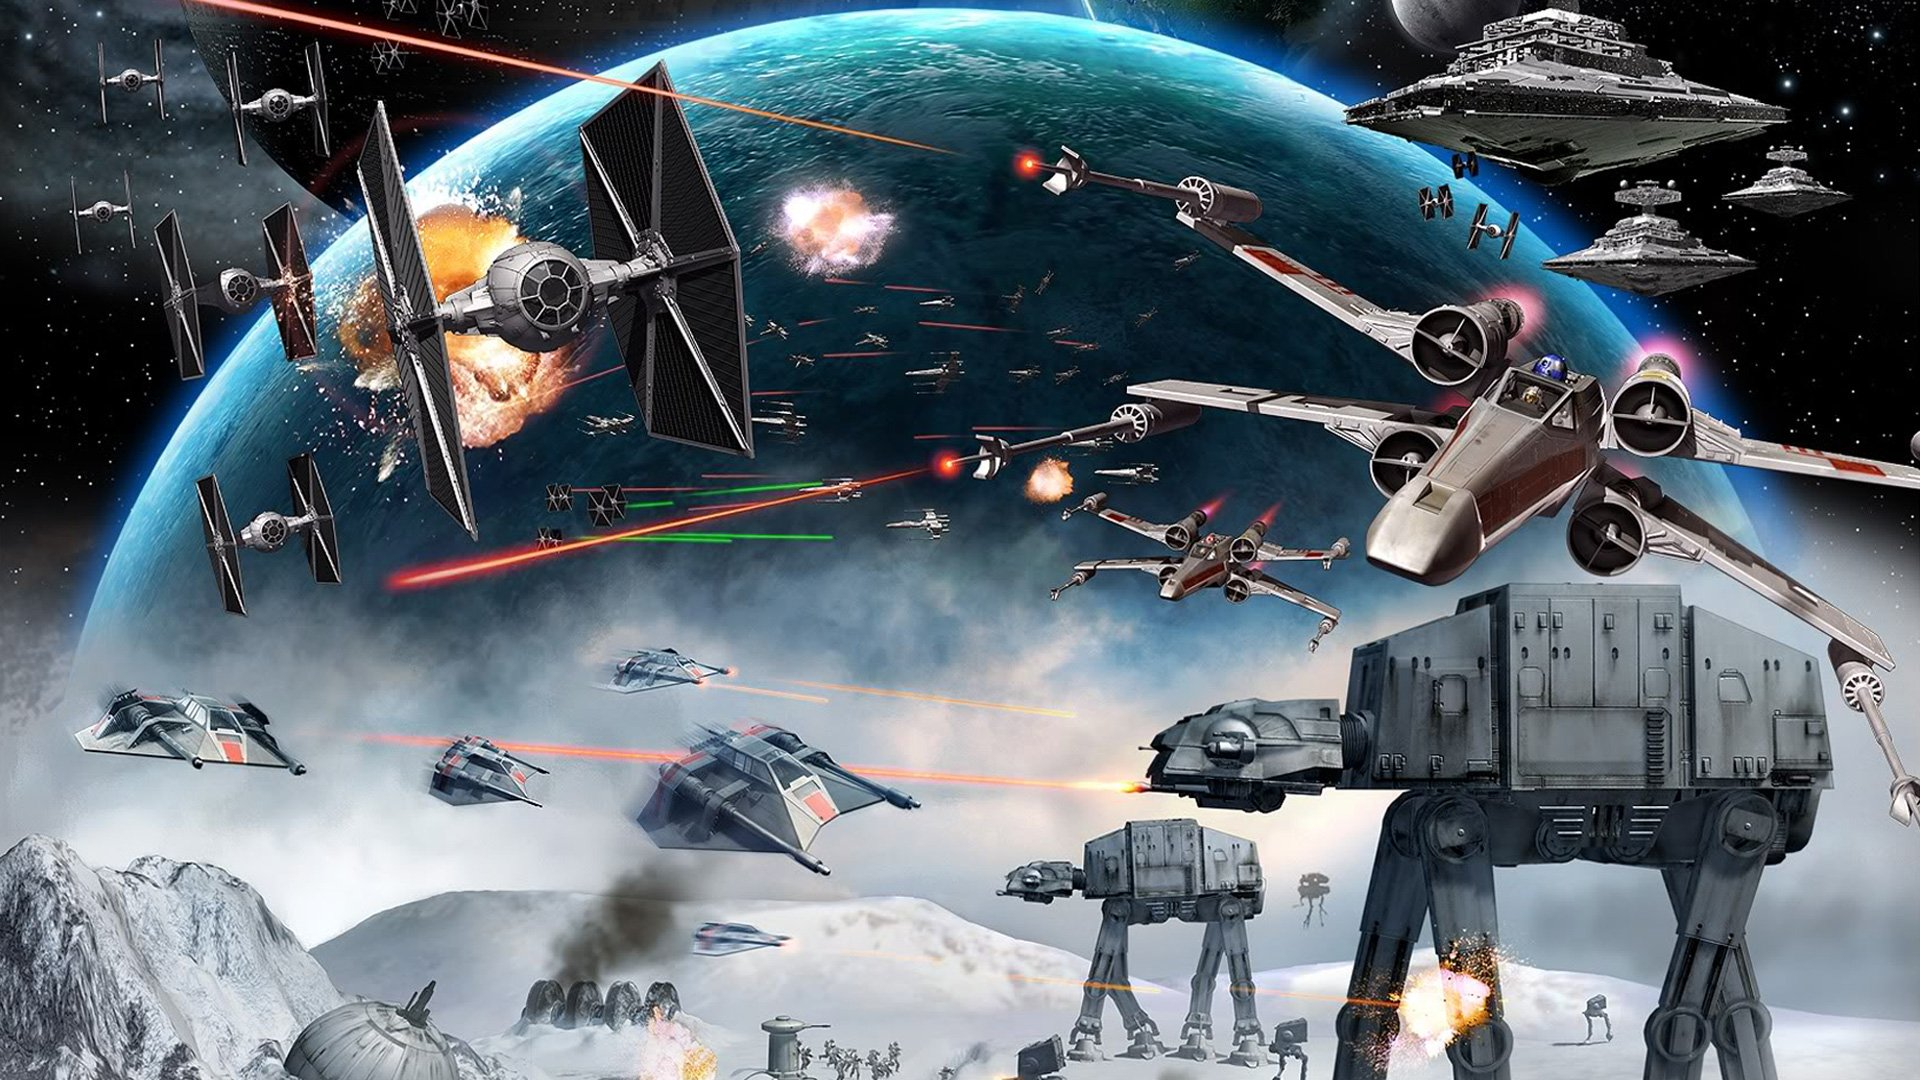 10 New Star Wars Clone Army Wallpaper Full Hd 1080p For Pc: Wallpaper Star Wars Millenium